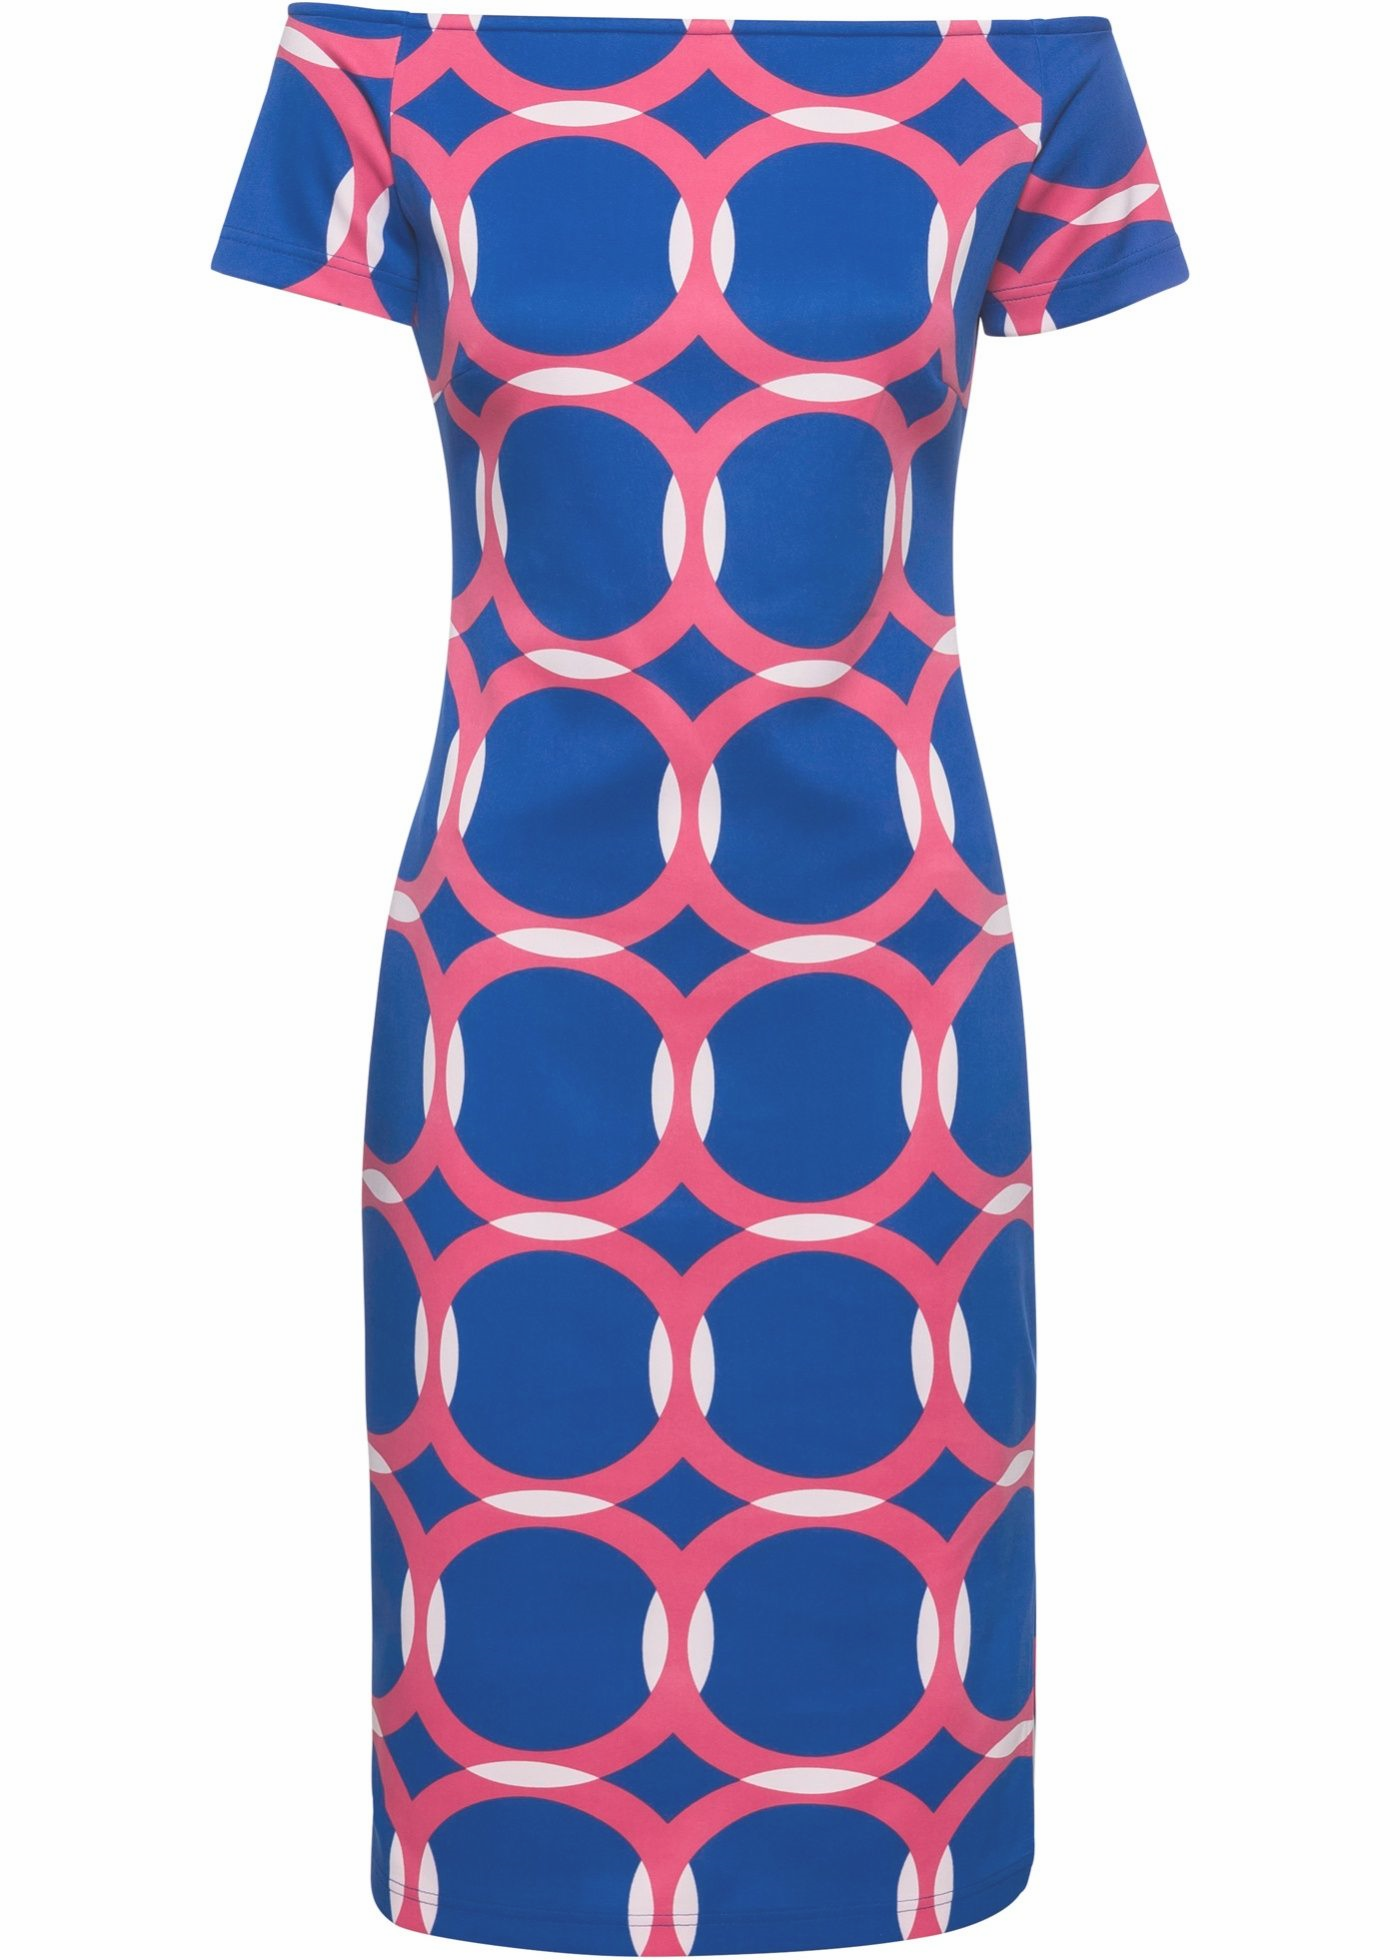 Kleid Mit Warenmuster In 2020 Short Sleeve Dresses Dresses With Sleeves Fashion